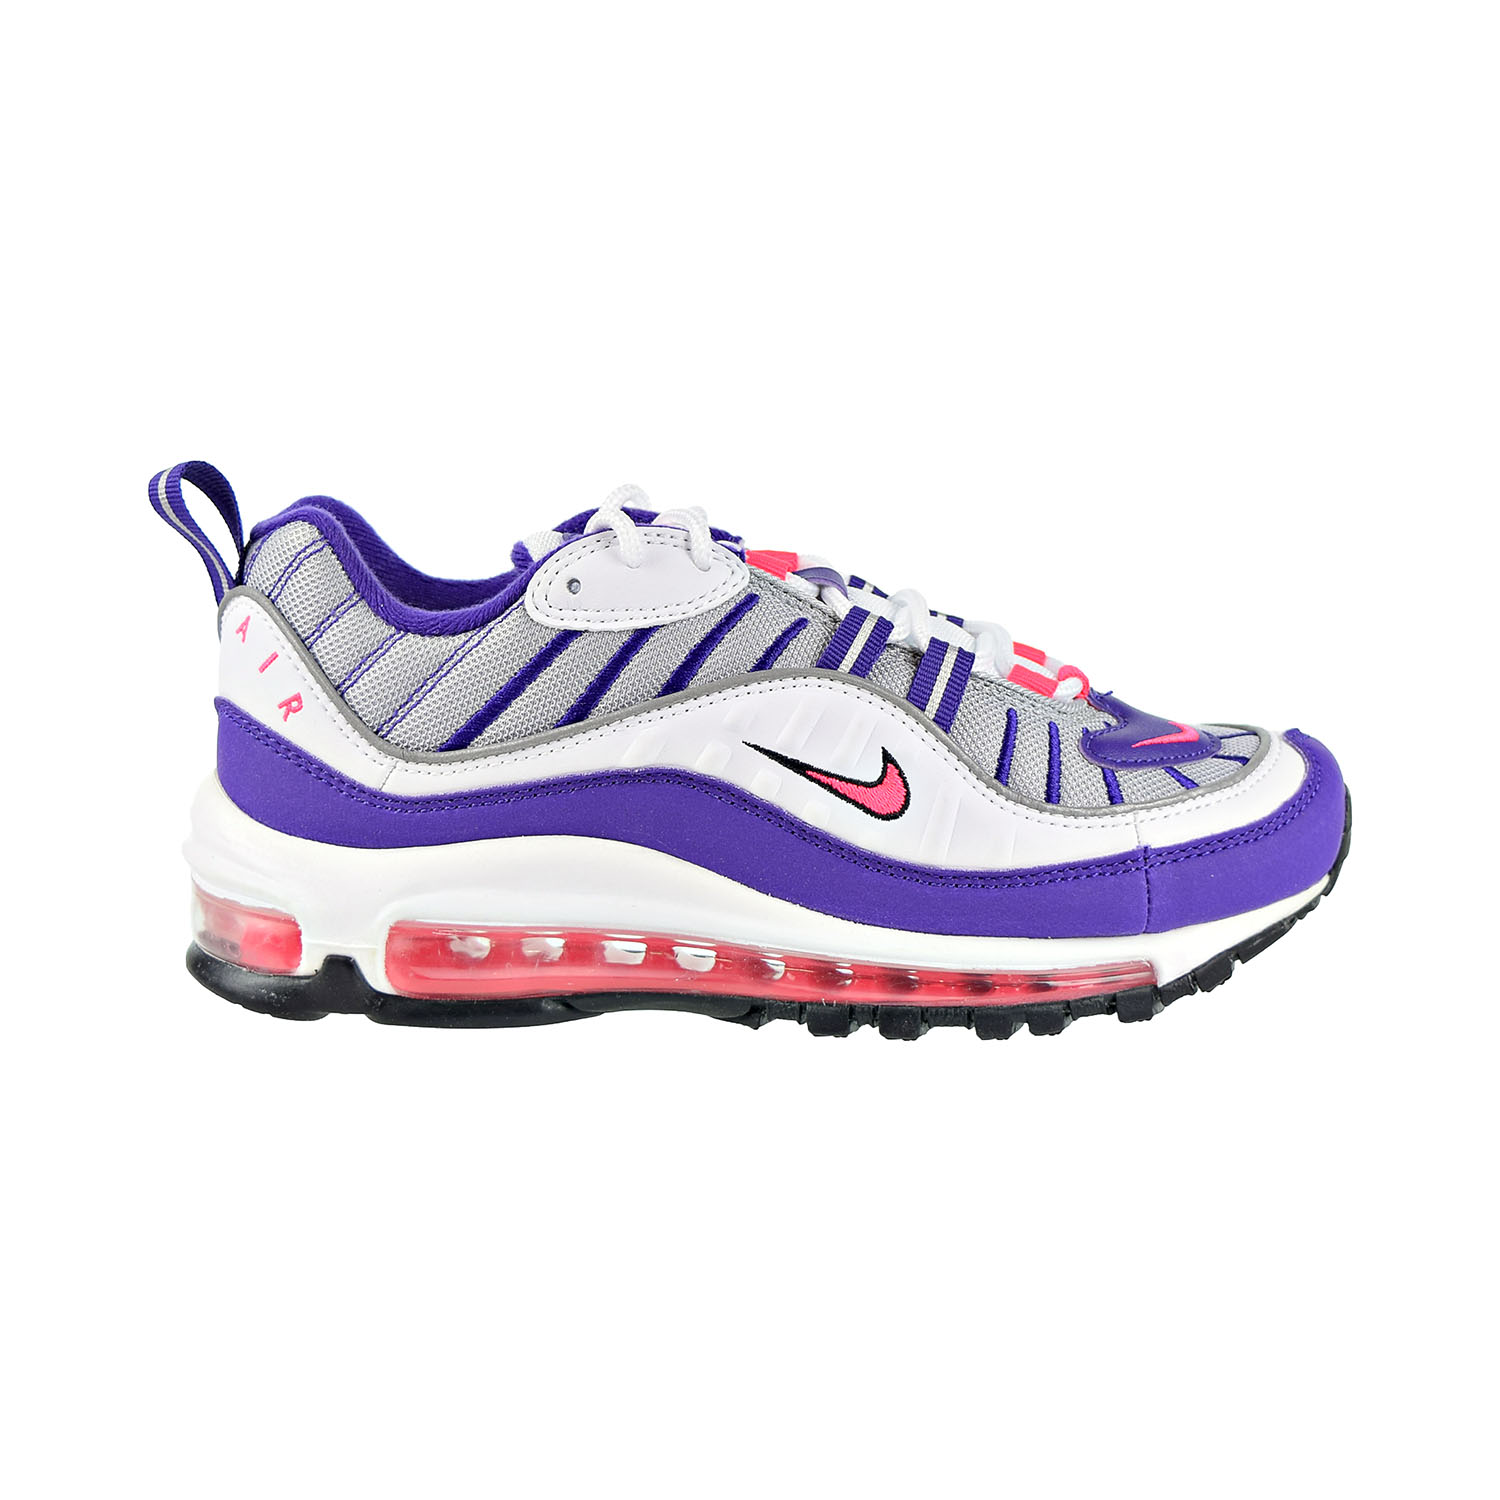 Details about Nike Air Max 98 Women's Shoes White Racer Pink ah6799 110